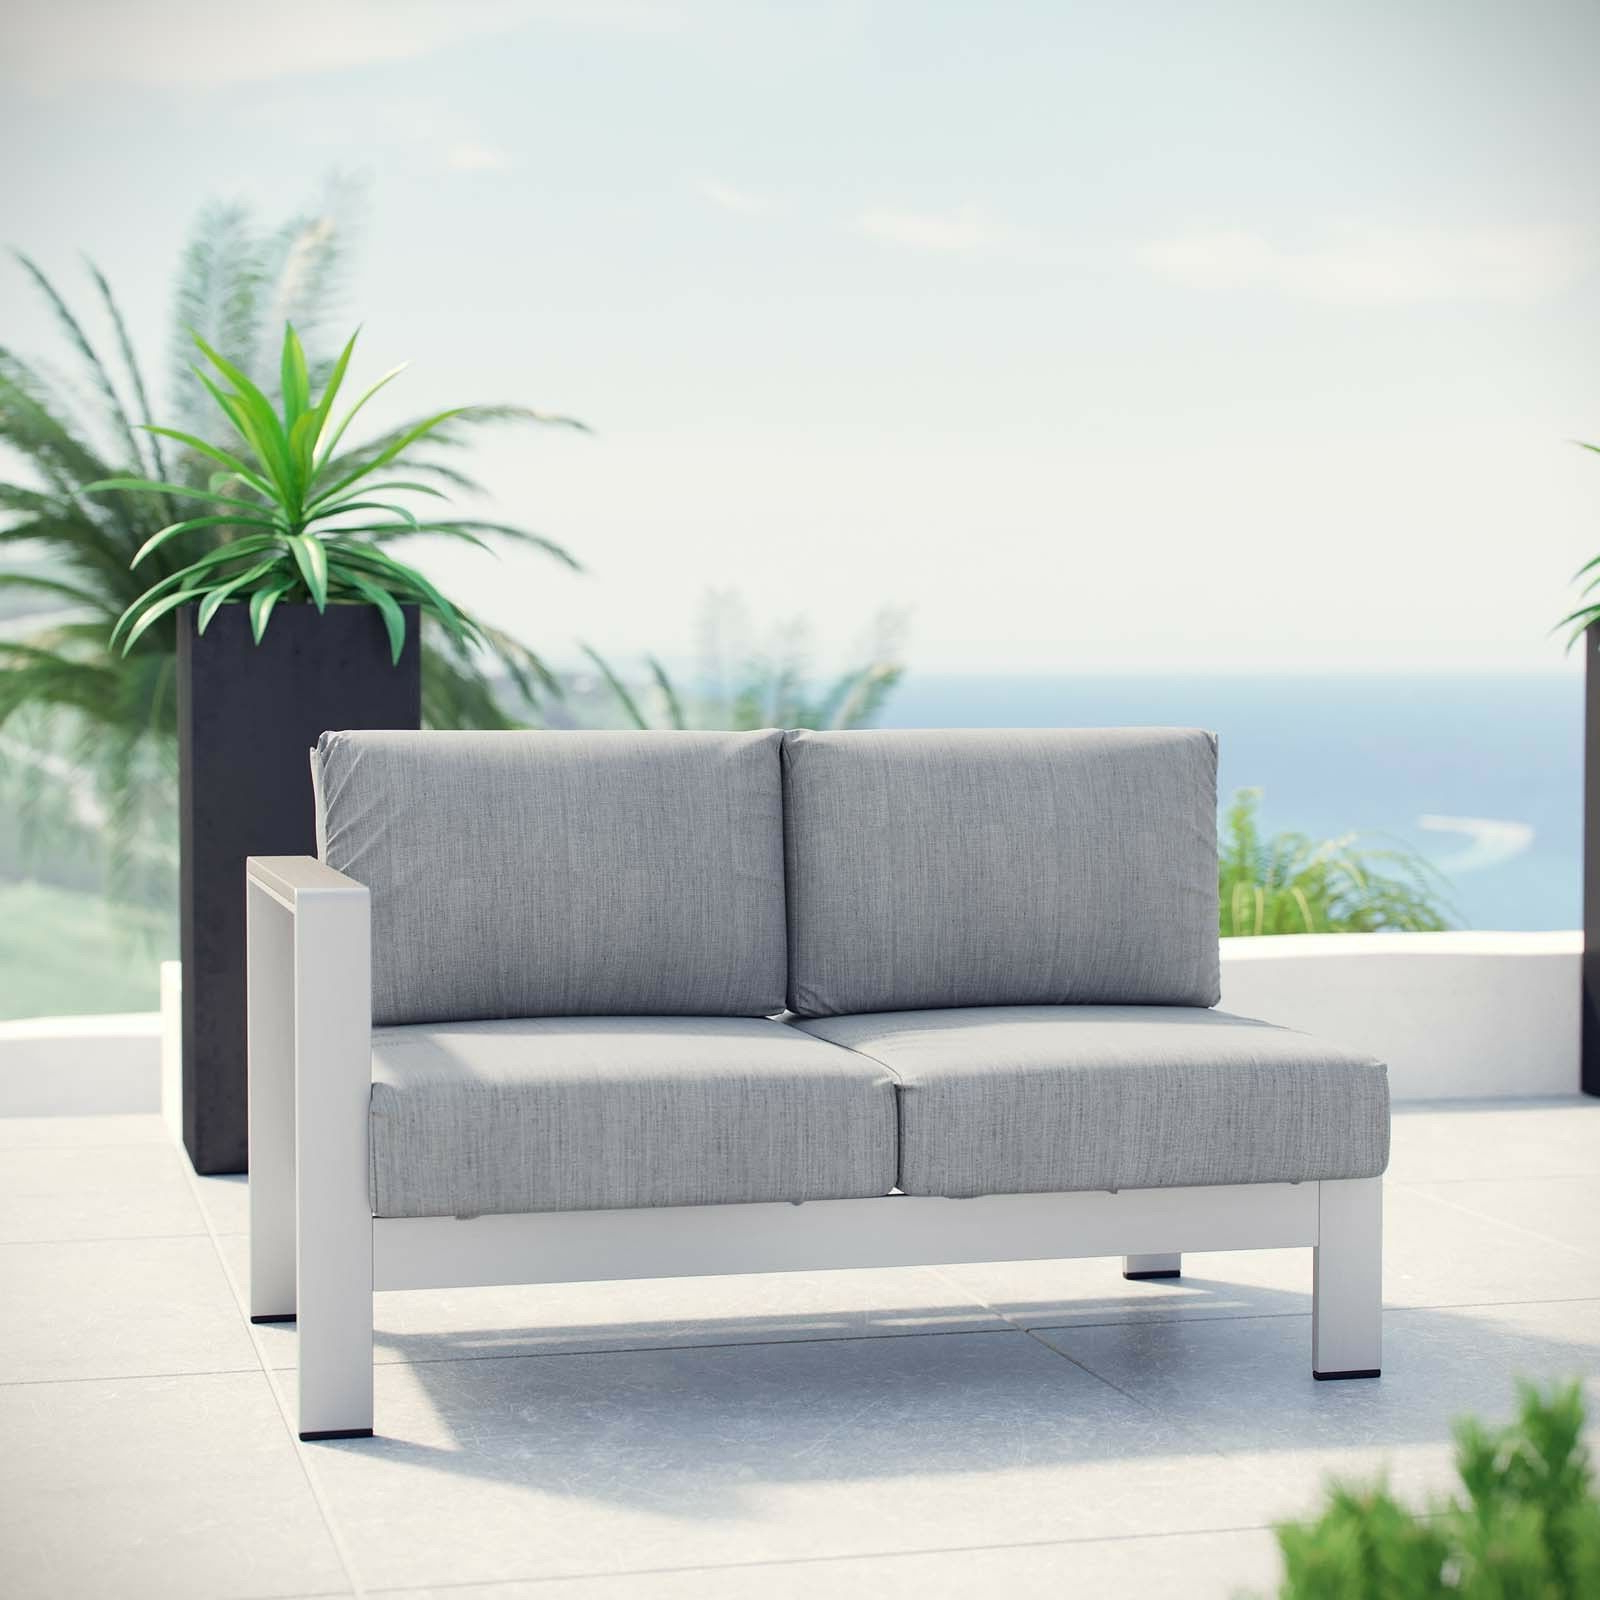 Details About Outdoor Patio Furniture Aluminum Sectional Right Arm Loveseat In Silver Gray Throughout Most Current Catalina Outdoor Right Arm Sectional Pieces With Cushions (View 9 of 25)